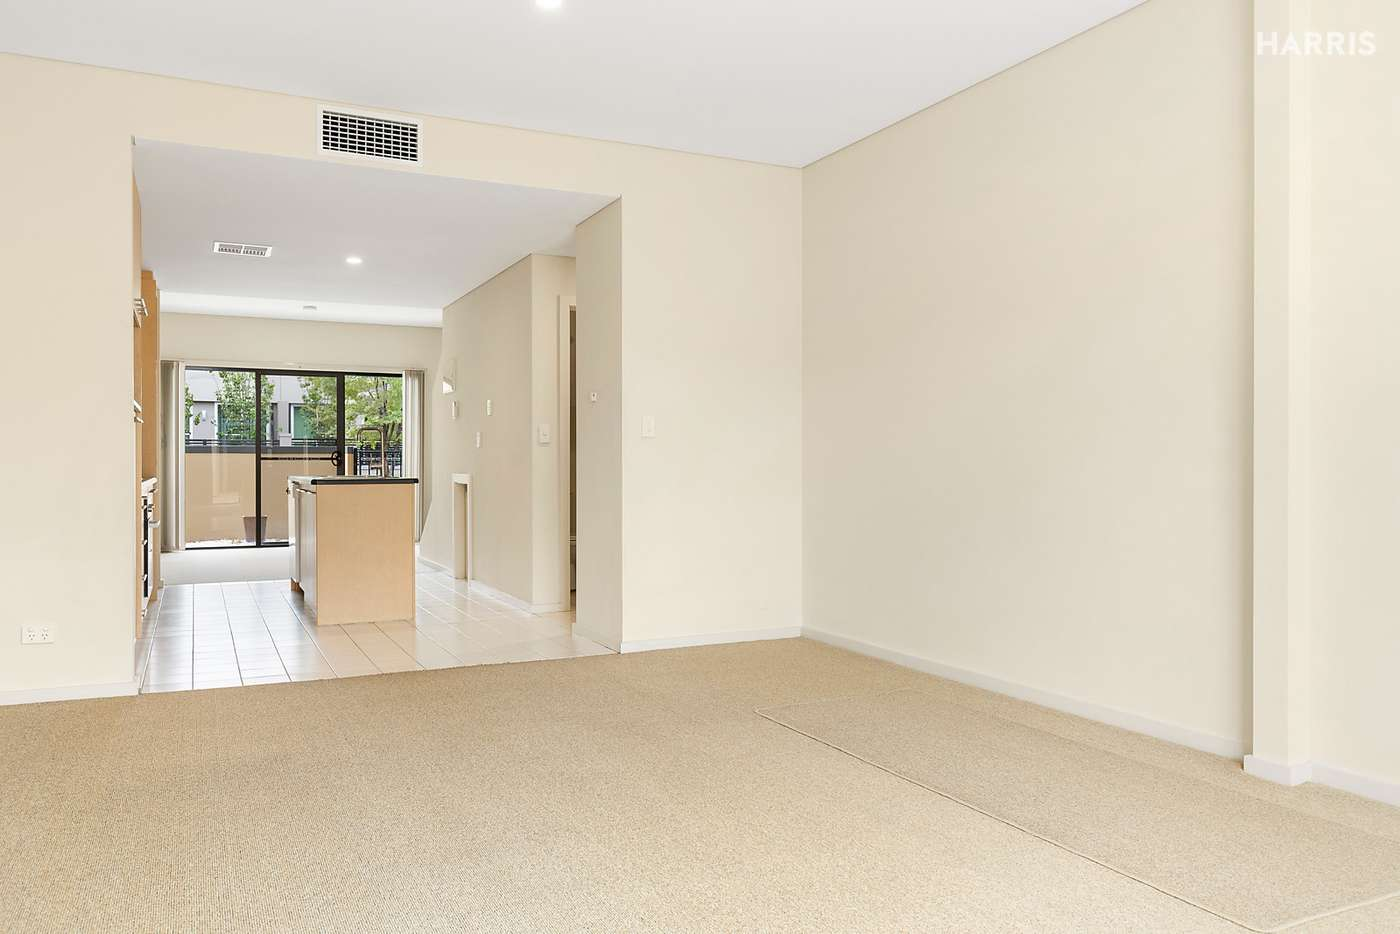 Seventh view of Homely townhouse listing, 7/2 Greentree Place, Mawson Lakes SA 5095